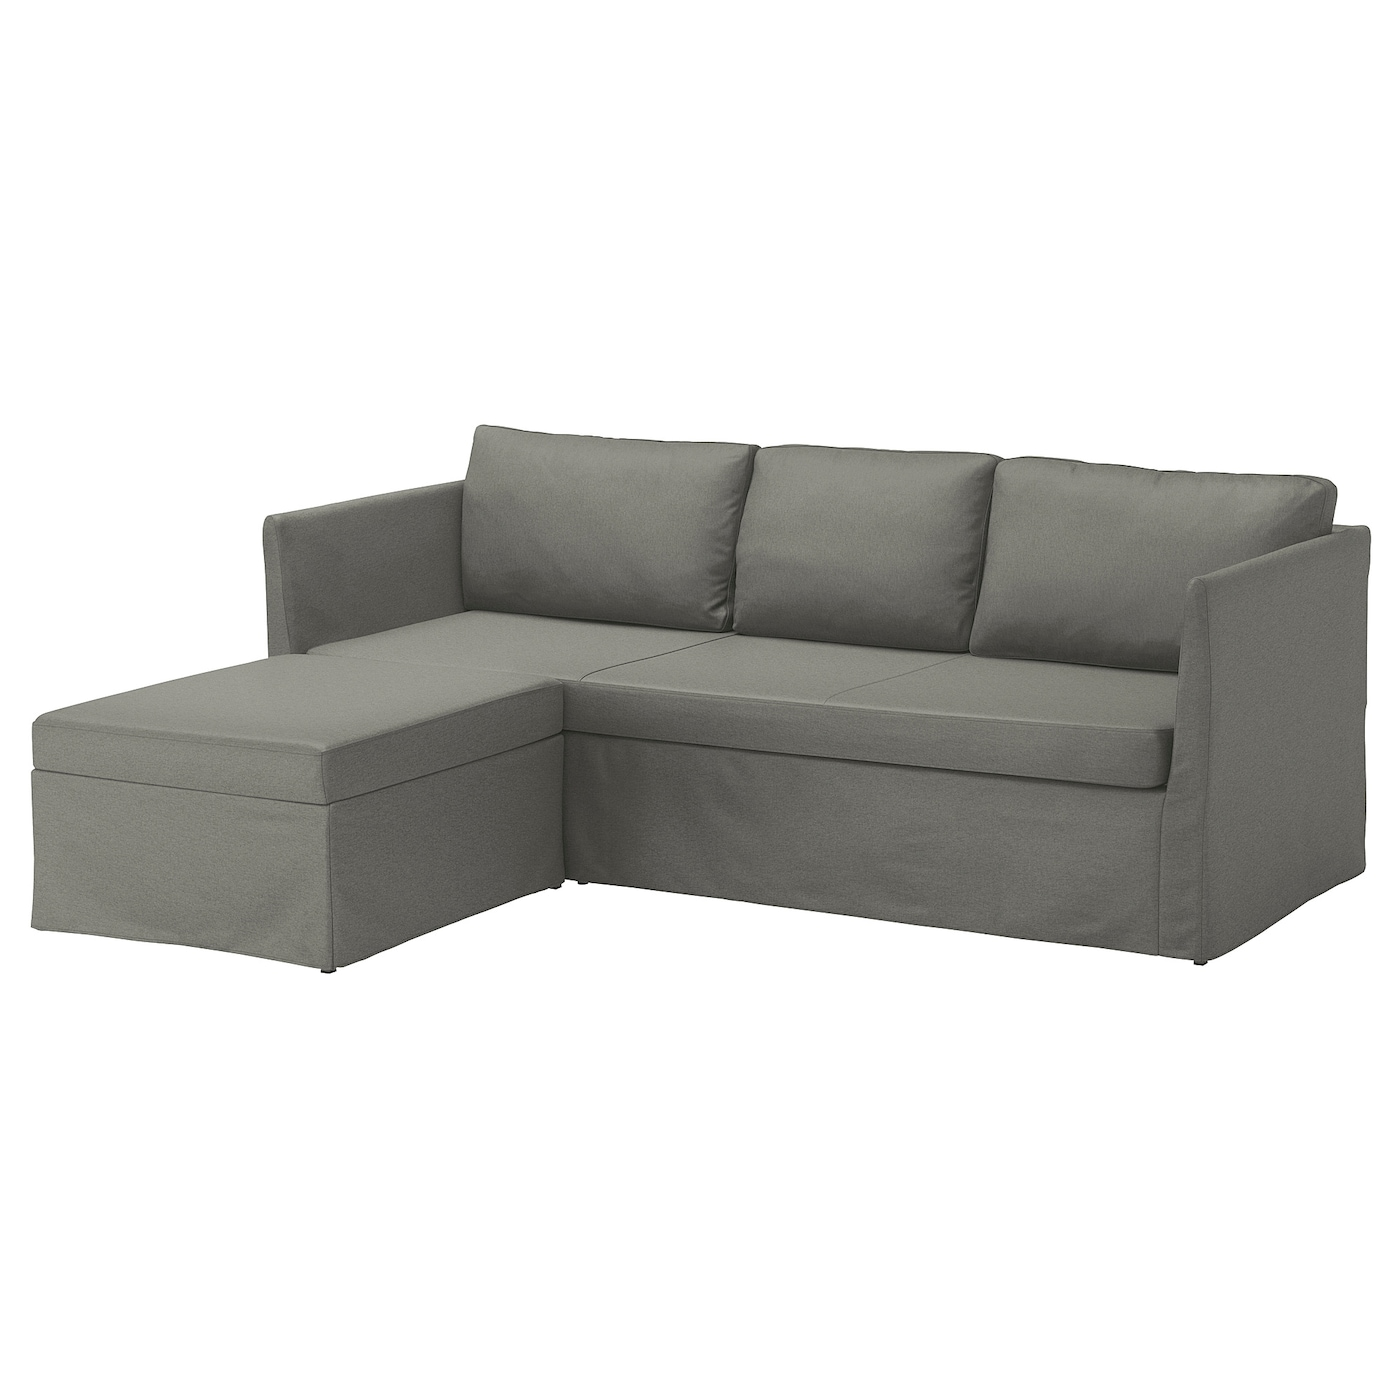 Br Thult Corner Sofa Bed Borred Grey Green Ikea